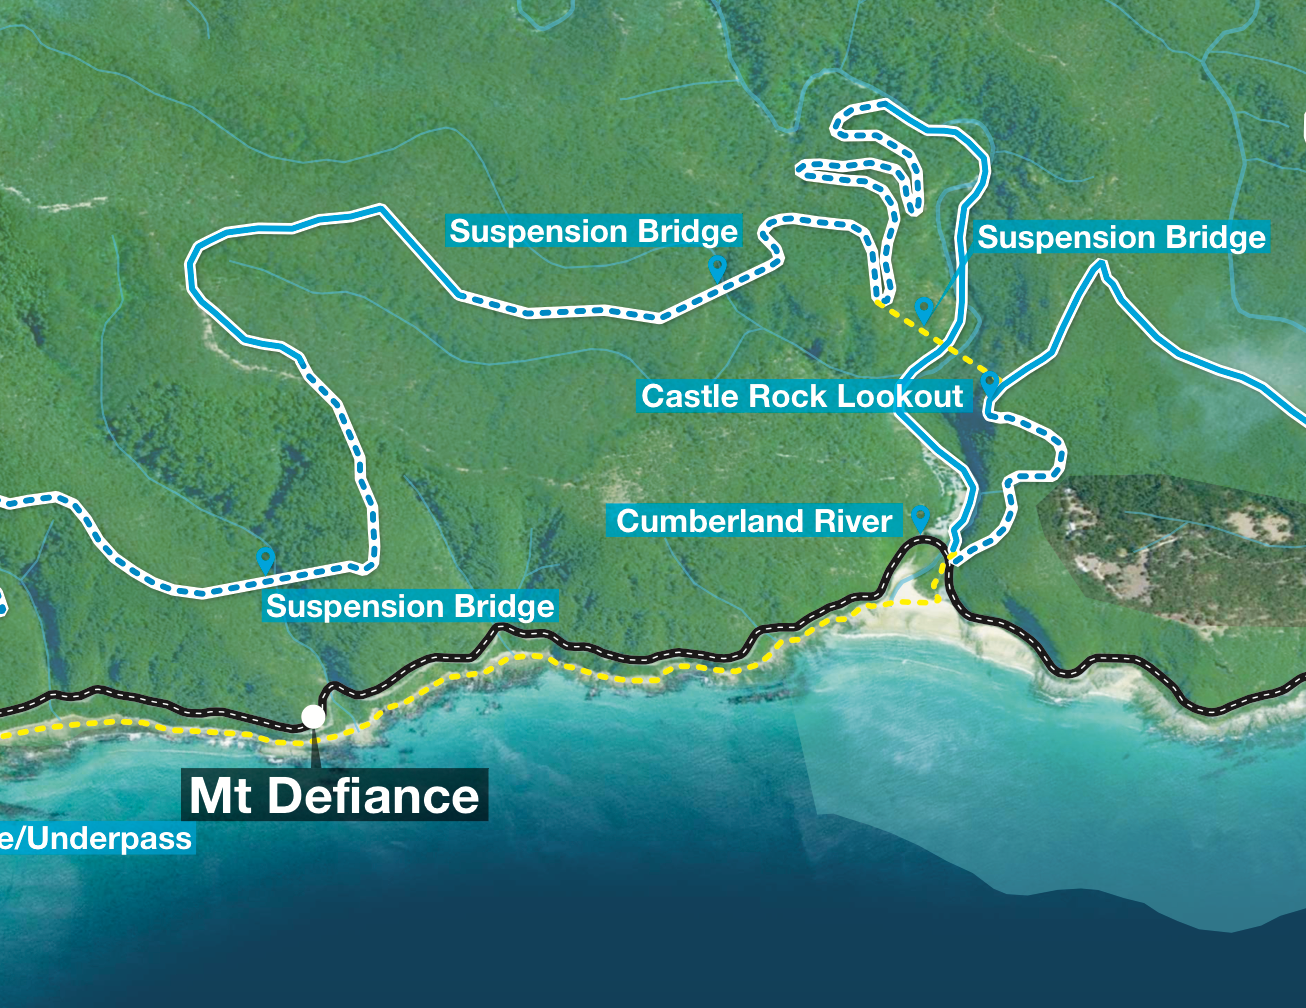 Draft concept map which shows three potential locations for suspension bridges between Lorne and Wye River in the Great Ocean Road region